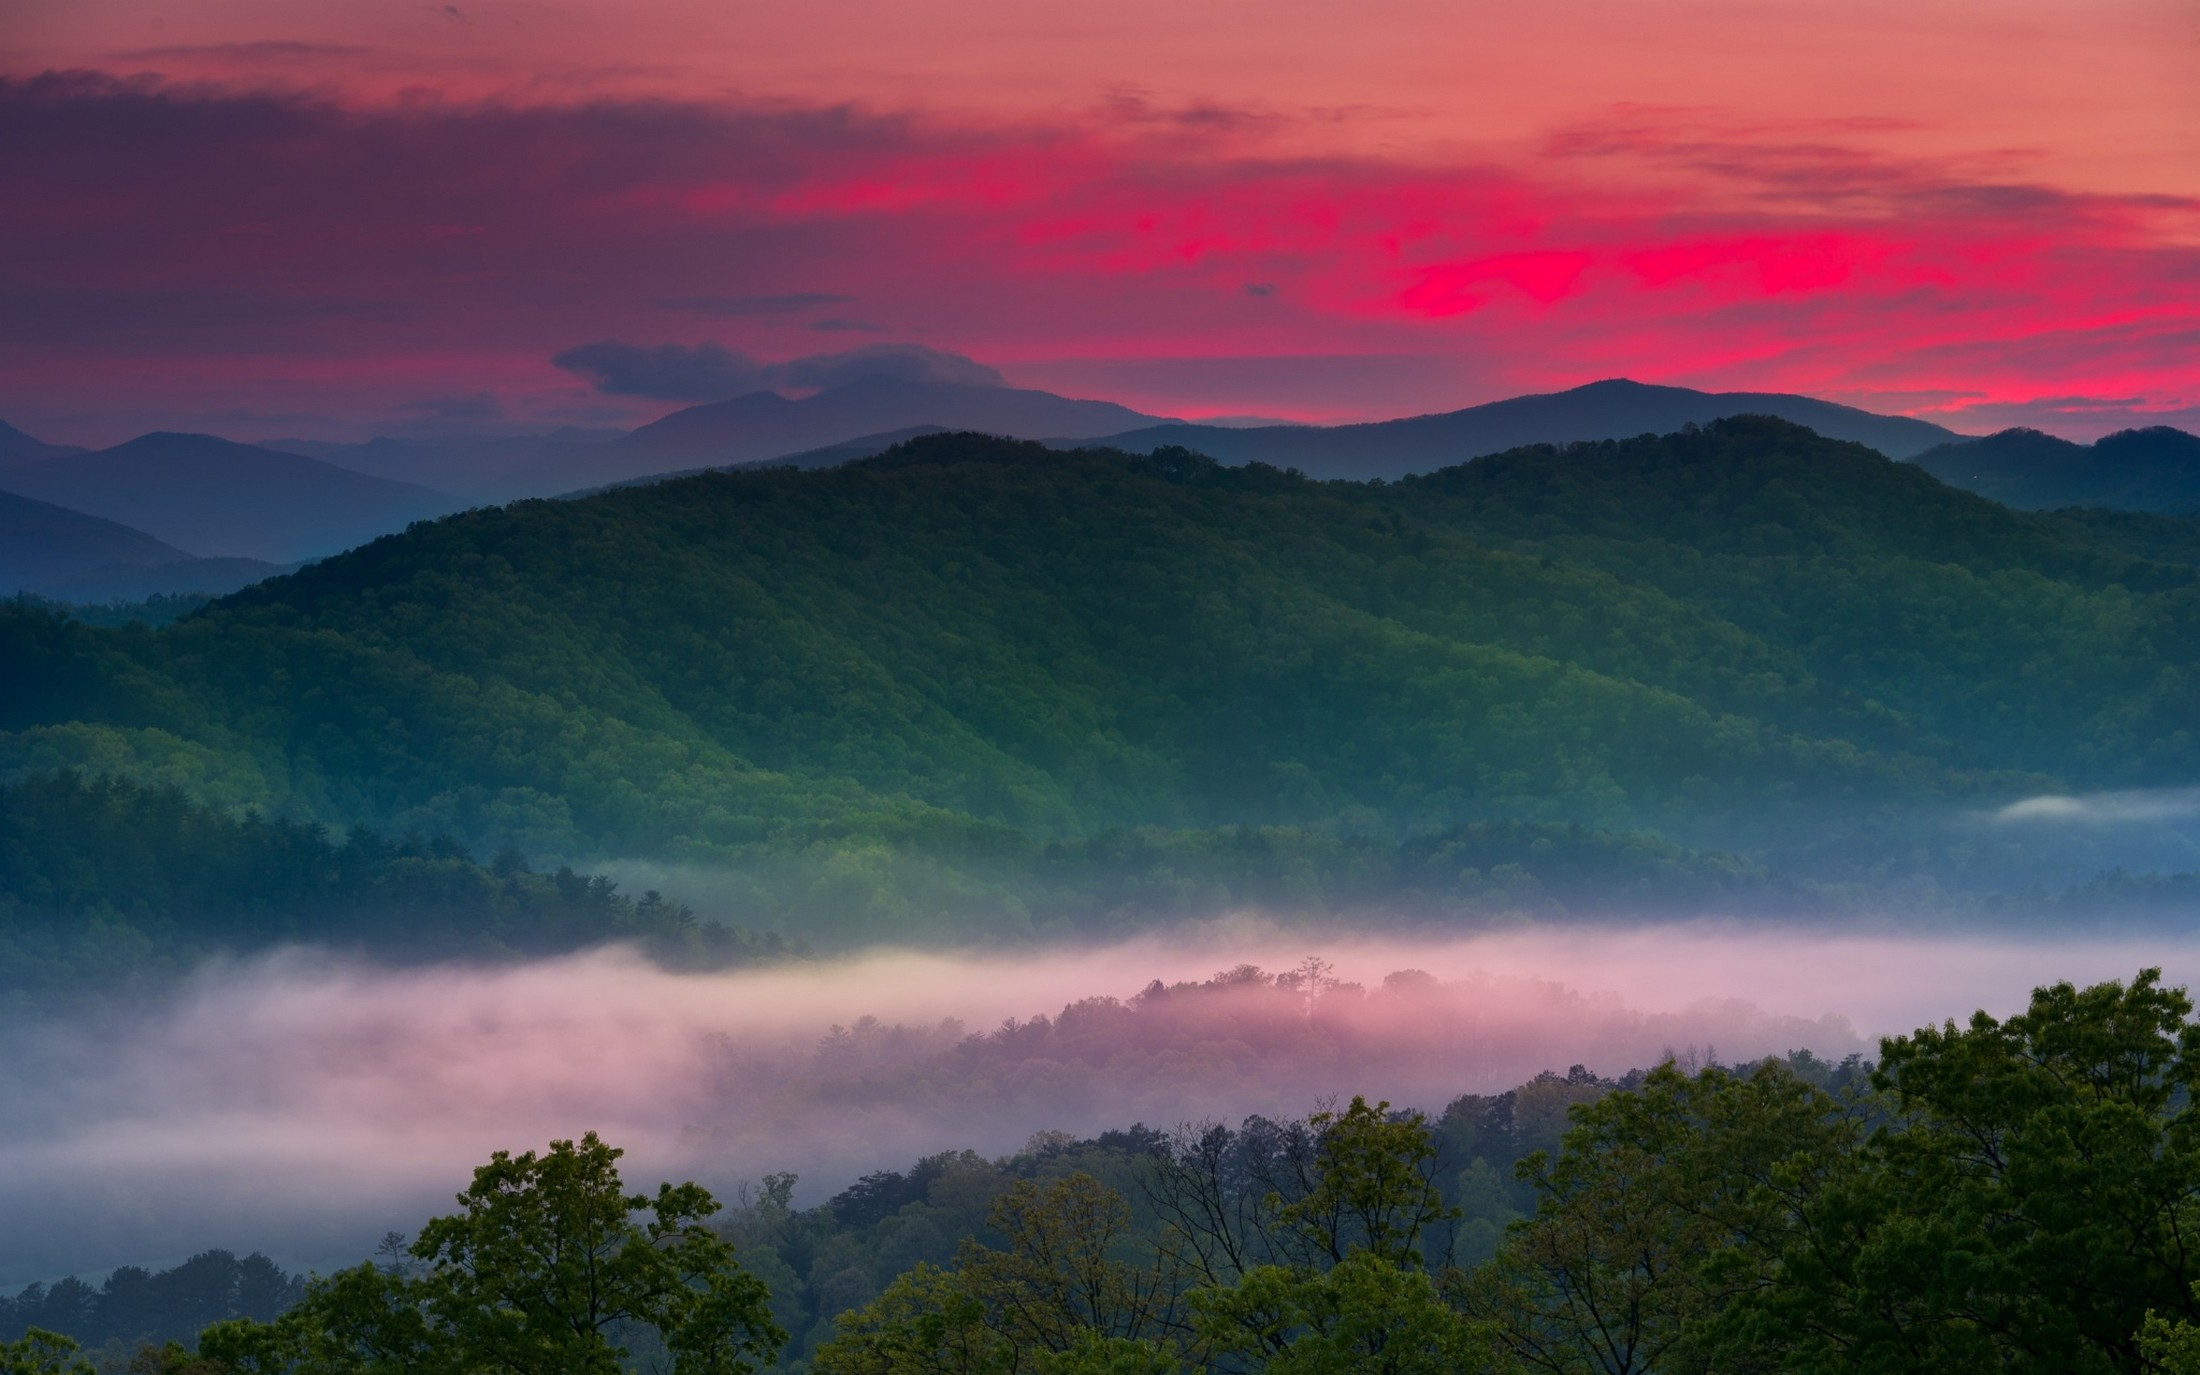 Fall Smoky Mountains Wallpaper Nature Landscape Spring Sunrise Mist Valley Mountain